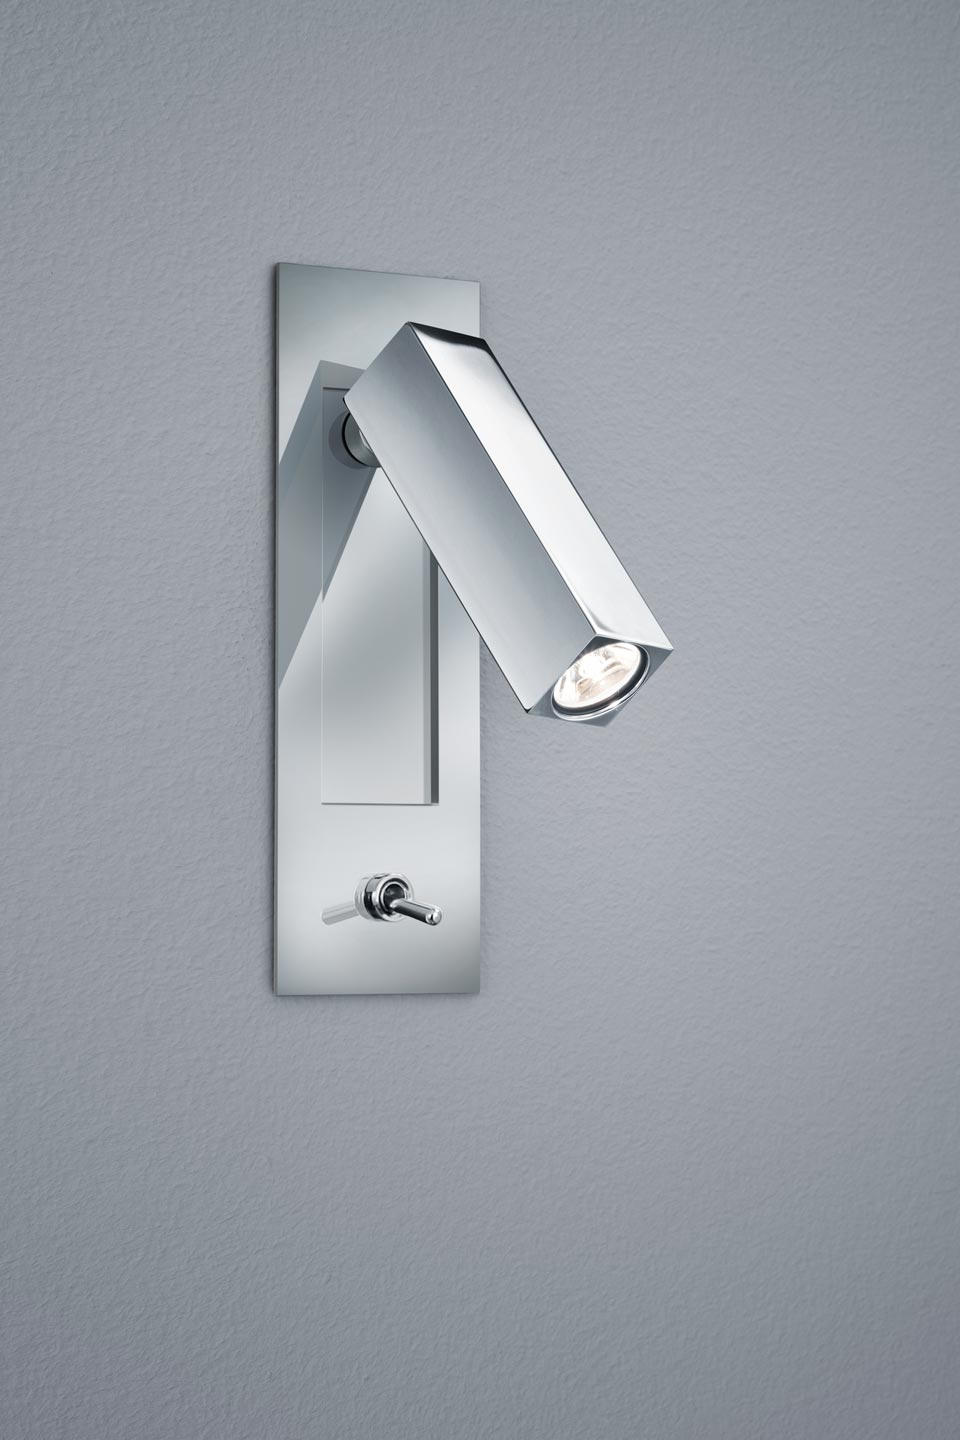 Leuchten Bilder Chrome Recessed Led Wall Light: Baulmann Leuchten Luxury Lightings Made In Germany - Réf. 16010130